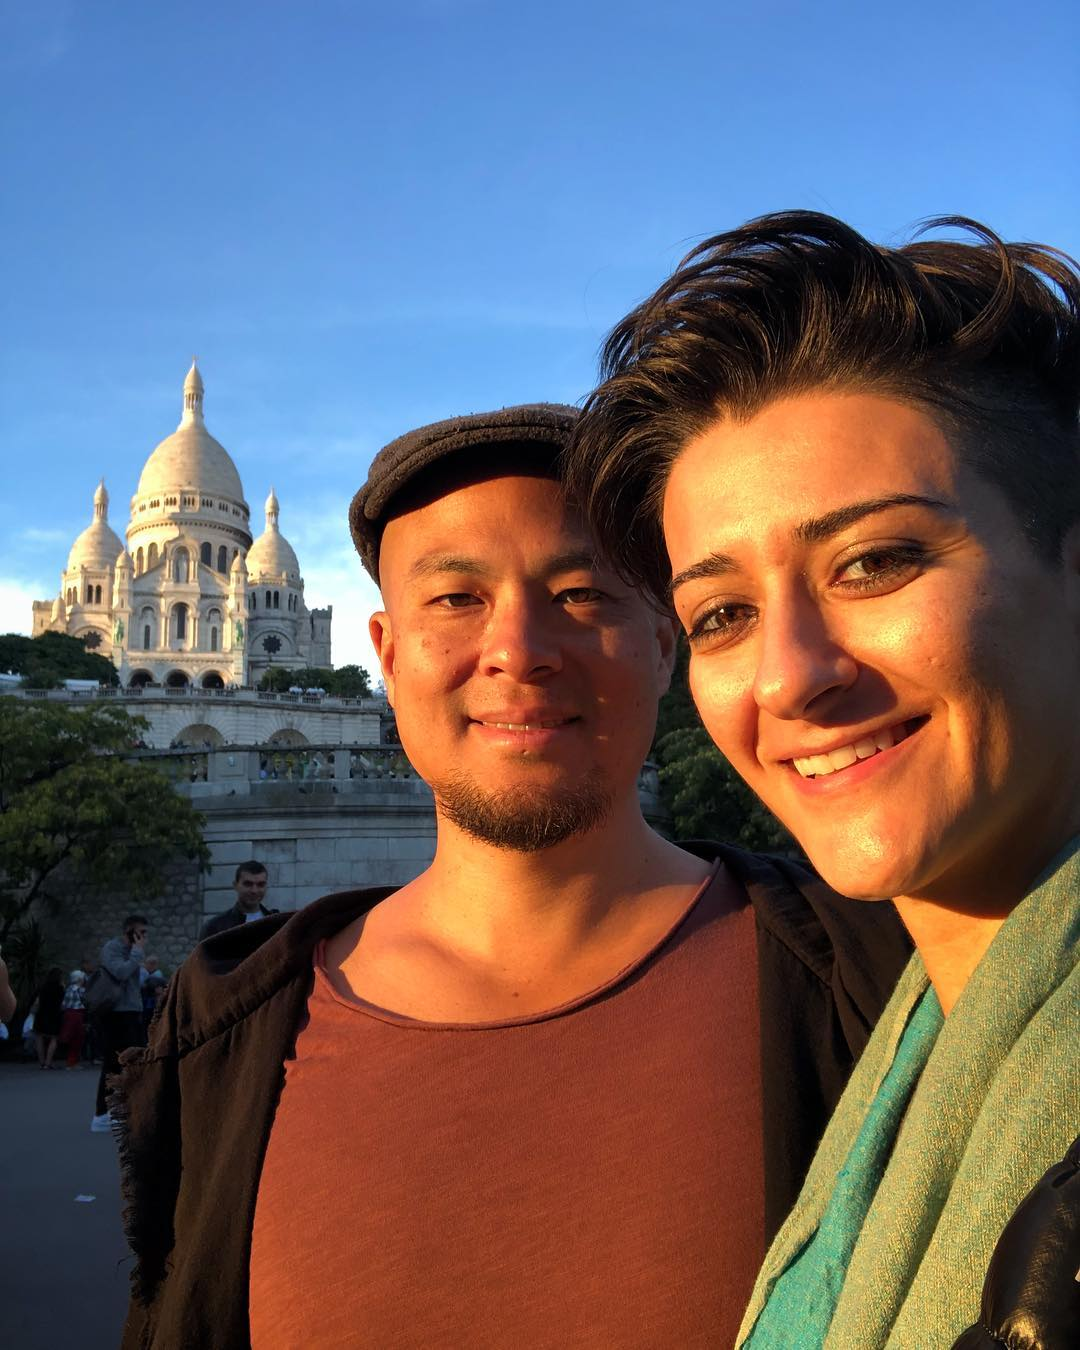 We've never celebrated Valentine's Day but I do love LOVE 🥰. So to celebrate my love: a golden hour picture of the handsome man who has my heart (in the beautiful city that has our hearts). . What's something that makes your heart feel full? . . . #love #valentines #travel #paris #france #tbt #chiropractor #healinghashimotos #hashimotos #autoimmune #thyroid #autoimmuneprotocol #guthealth #gfdf #persian #hsp #introvert #sensitive #intuitive #empath #mindbody #chiropractic #nutrition #functionalmedicine #animalchiropractor #creativechiropractor #homeopathy #DrTitusChiu #DrNatashaFallahi #DrNatashaF